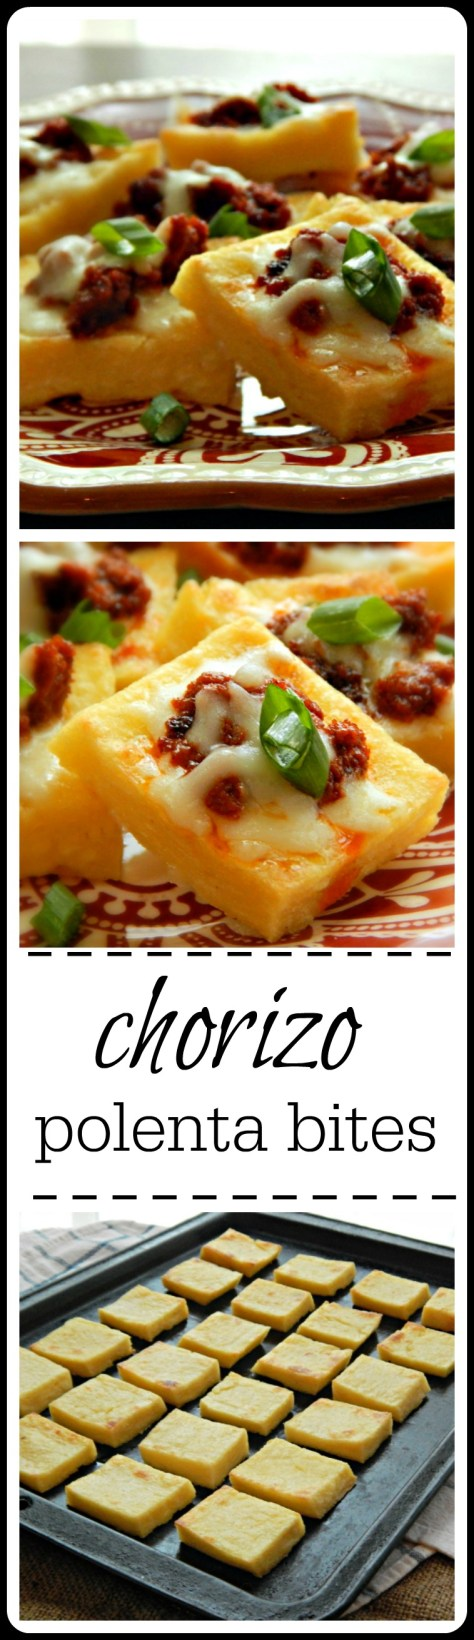 Awesome Appetizer - creamy polenta with just a bit of chorizo and melty cheese